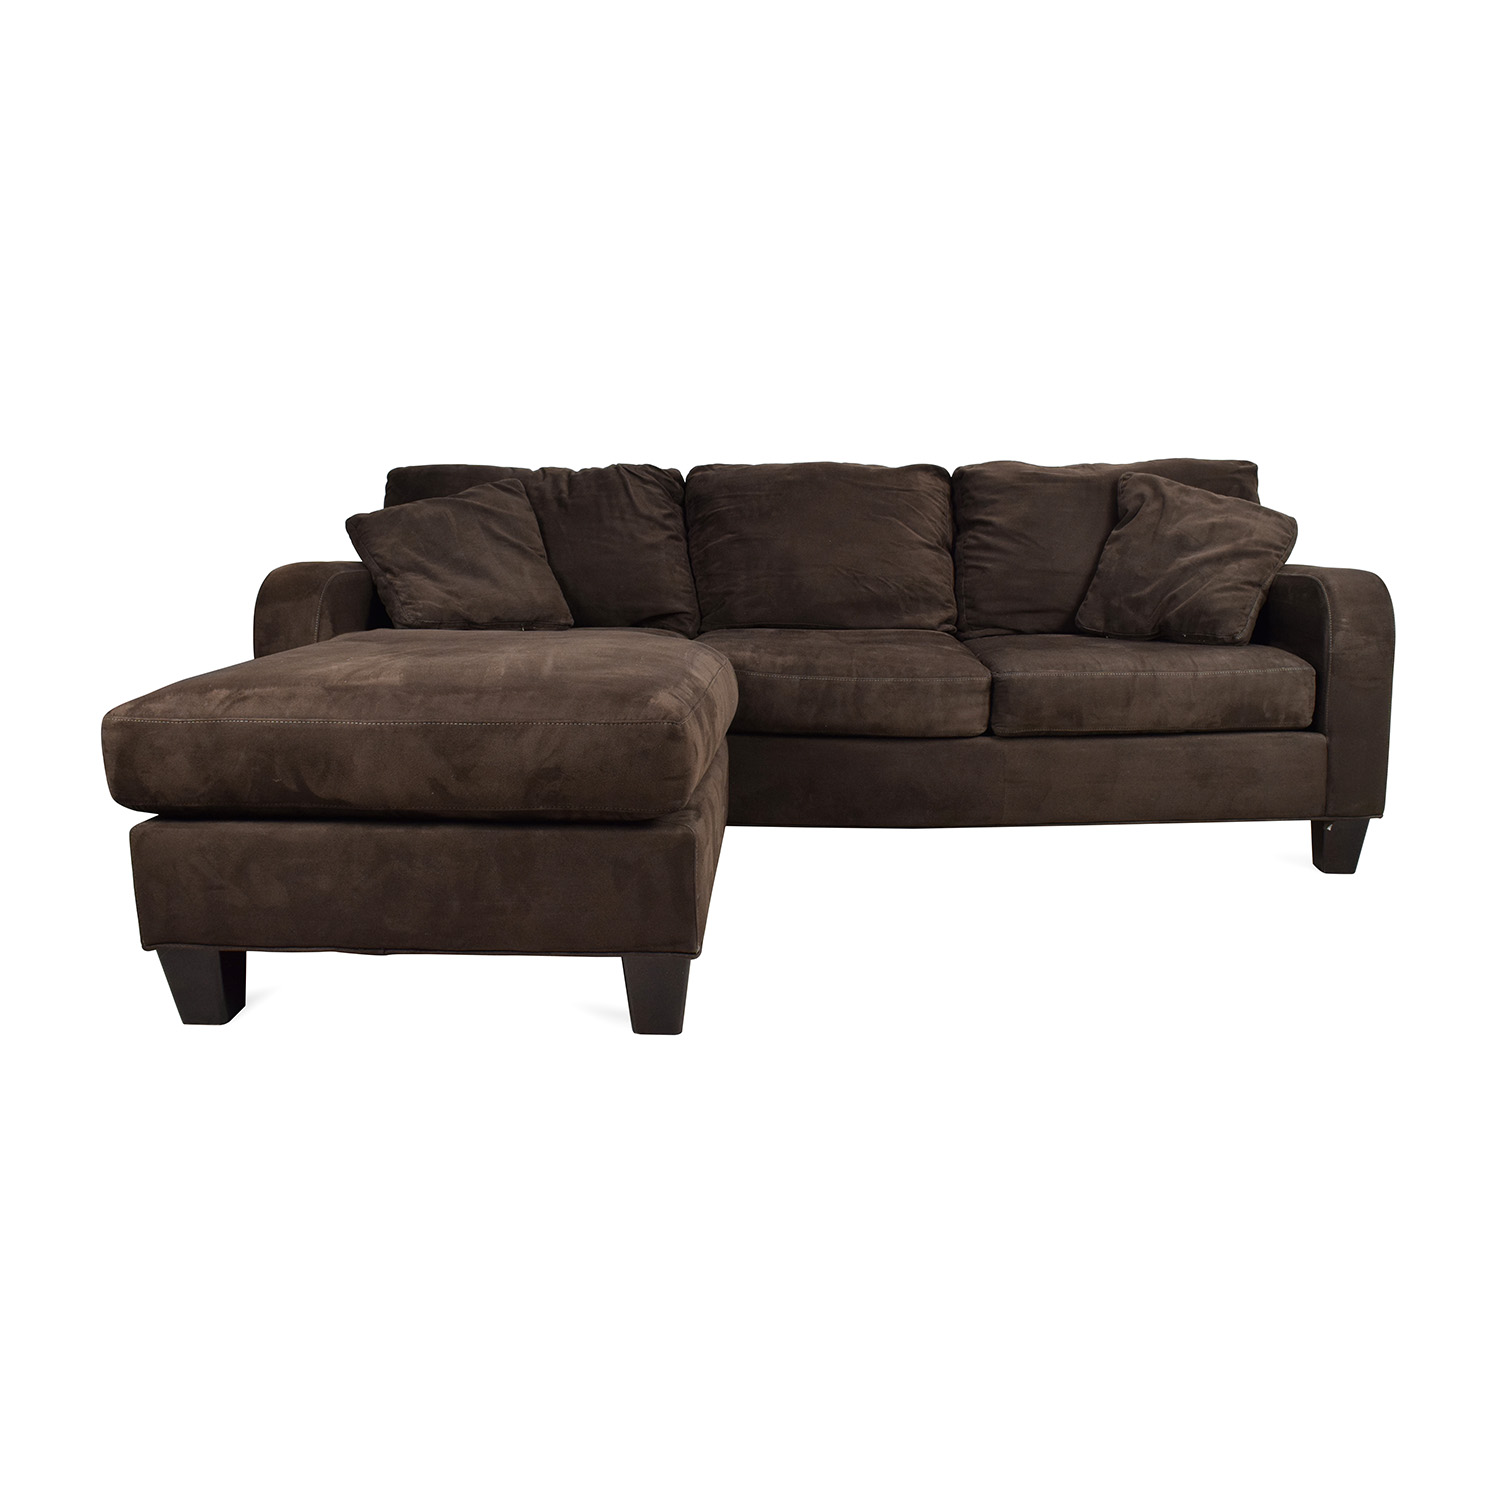 cindy crawford bellingham sofa reviews styles for small rooms bailey microfiber chaise articles with